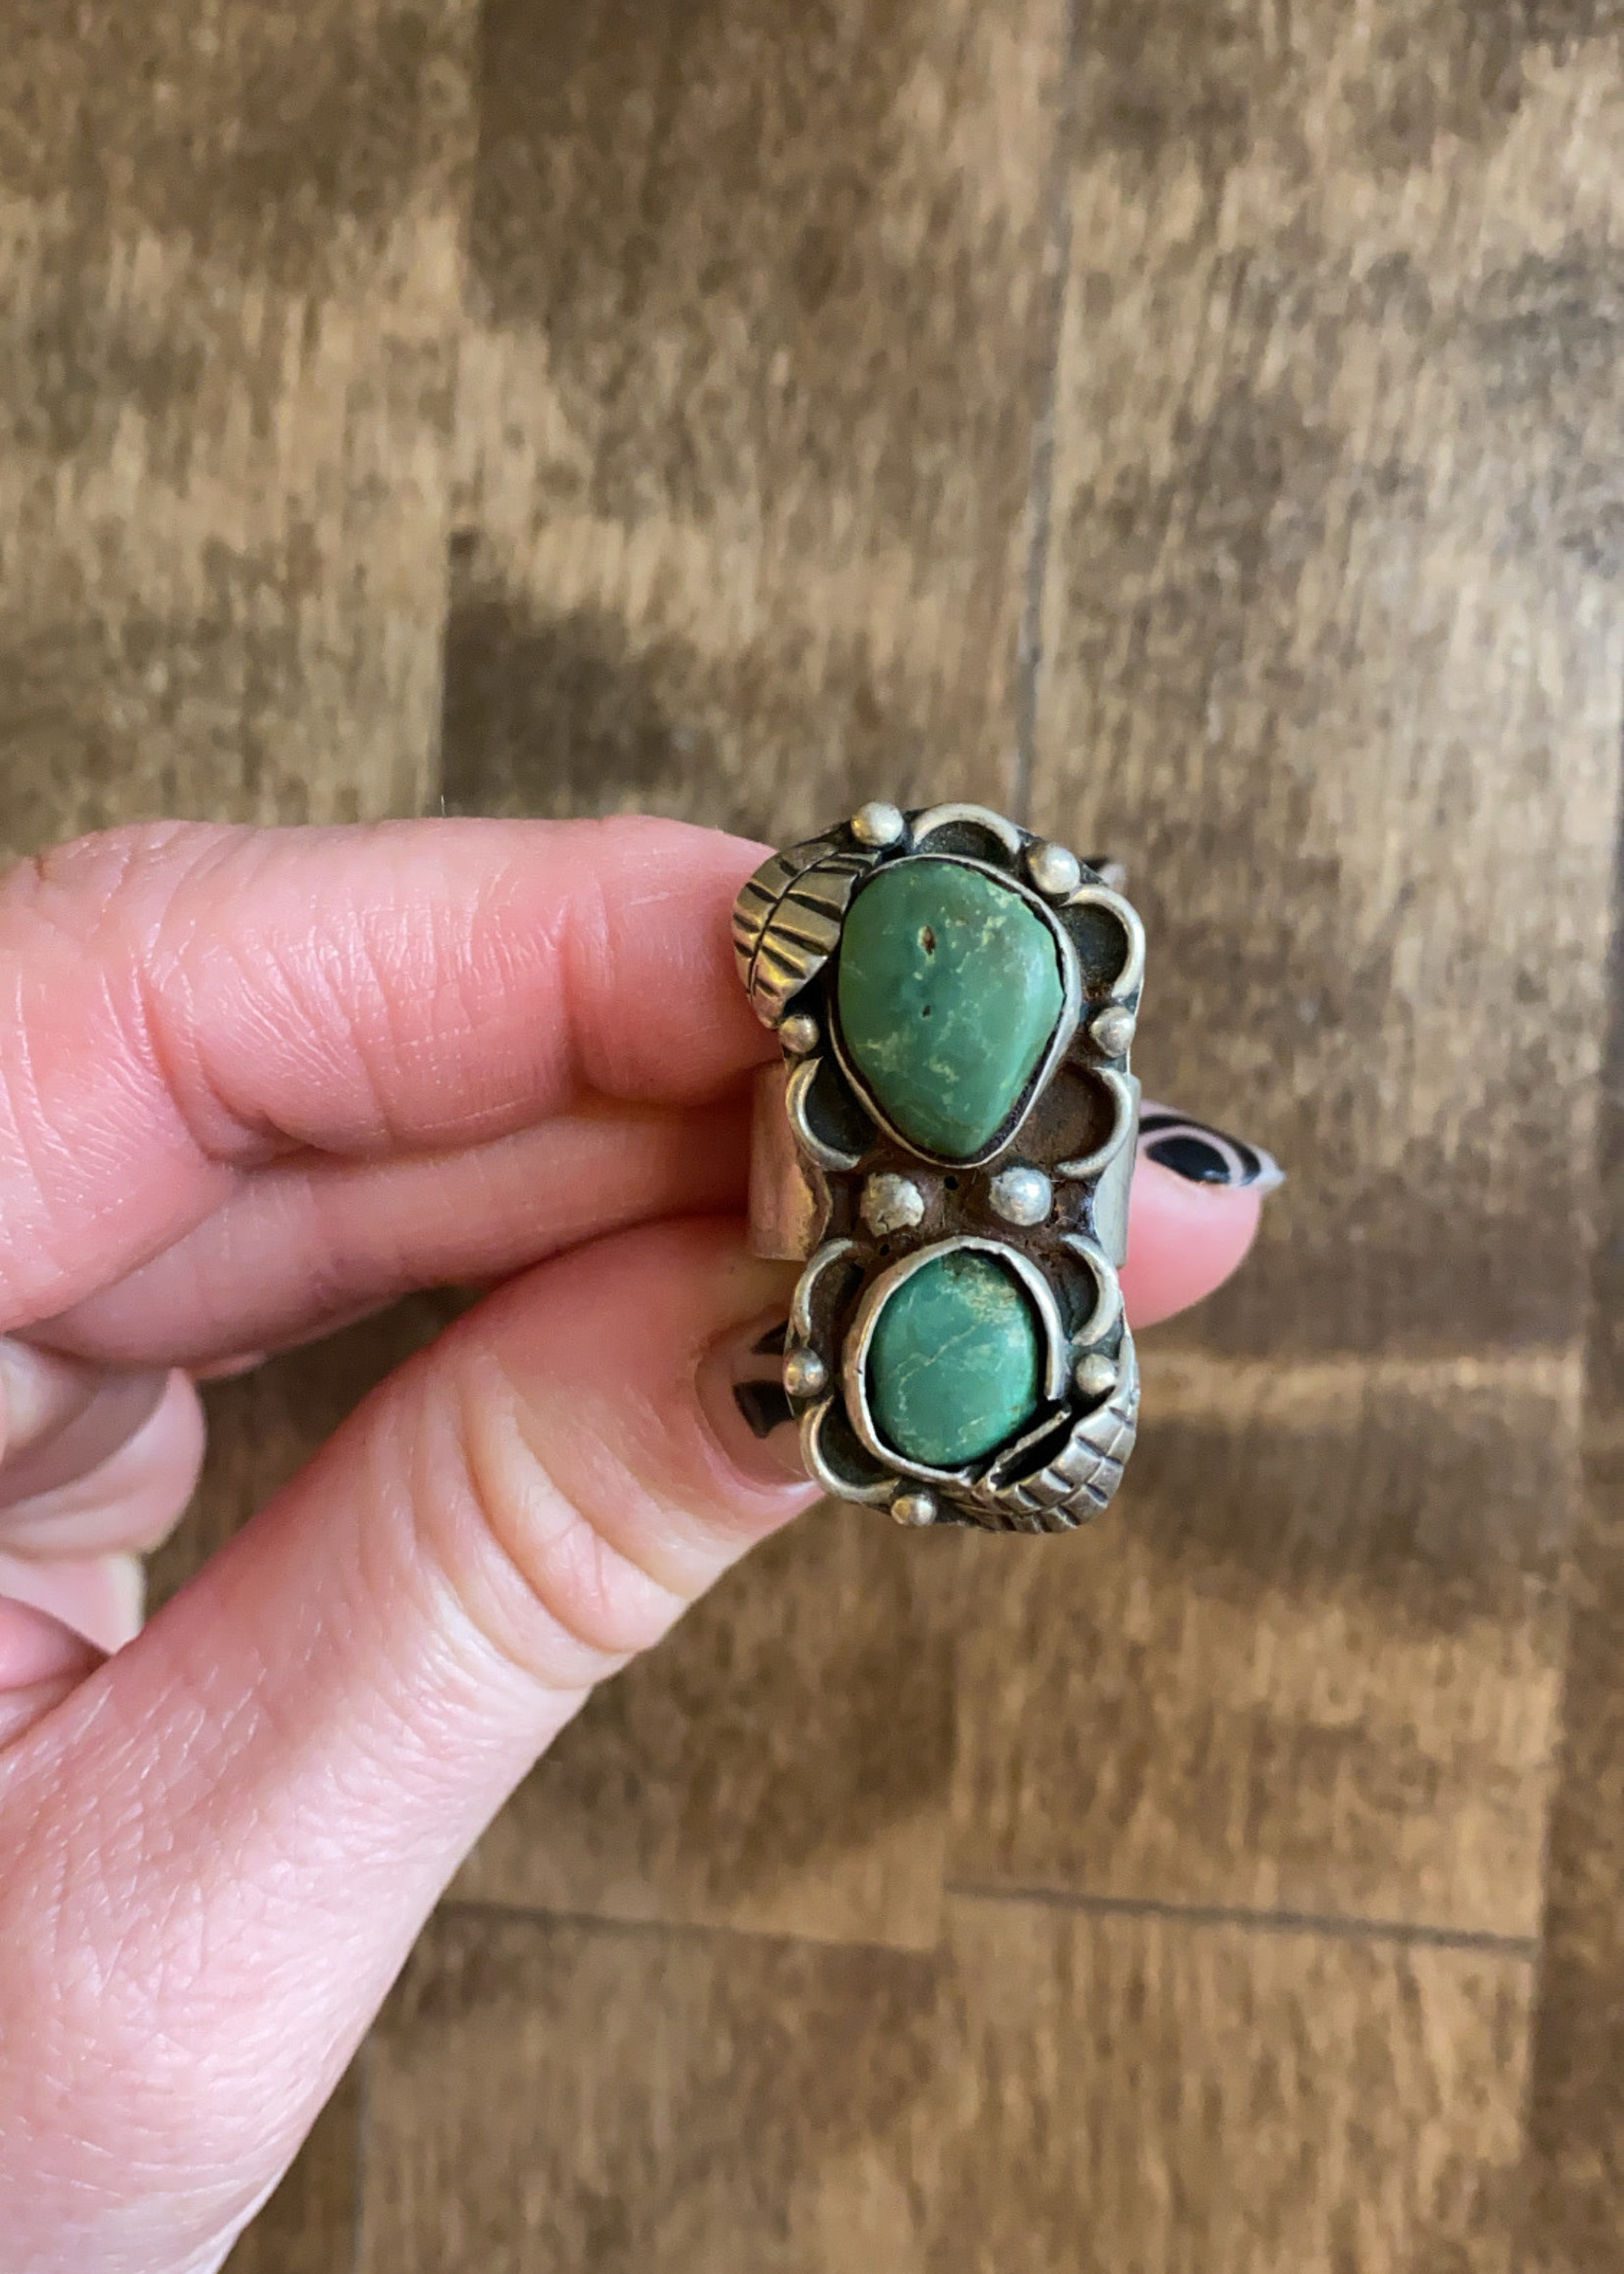 Vintage Sterling Silver Ring with 2 Turquoise Stones 5